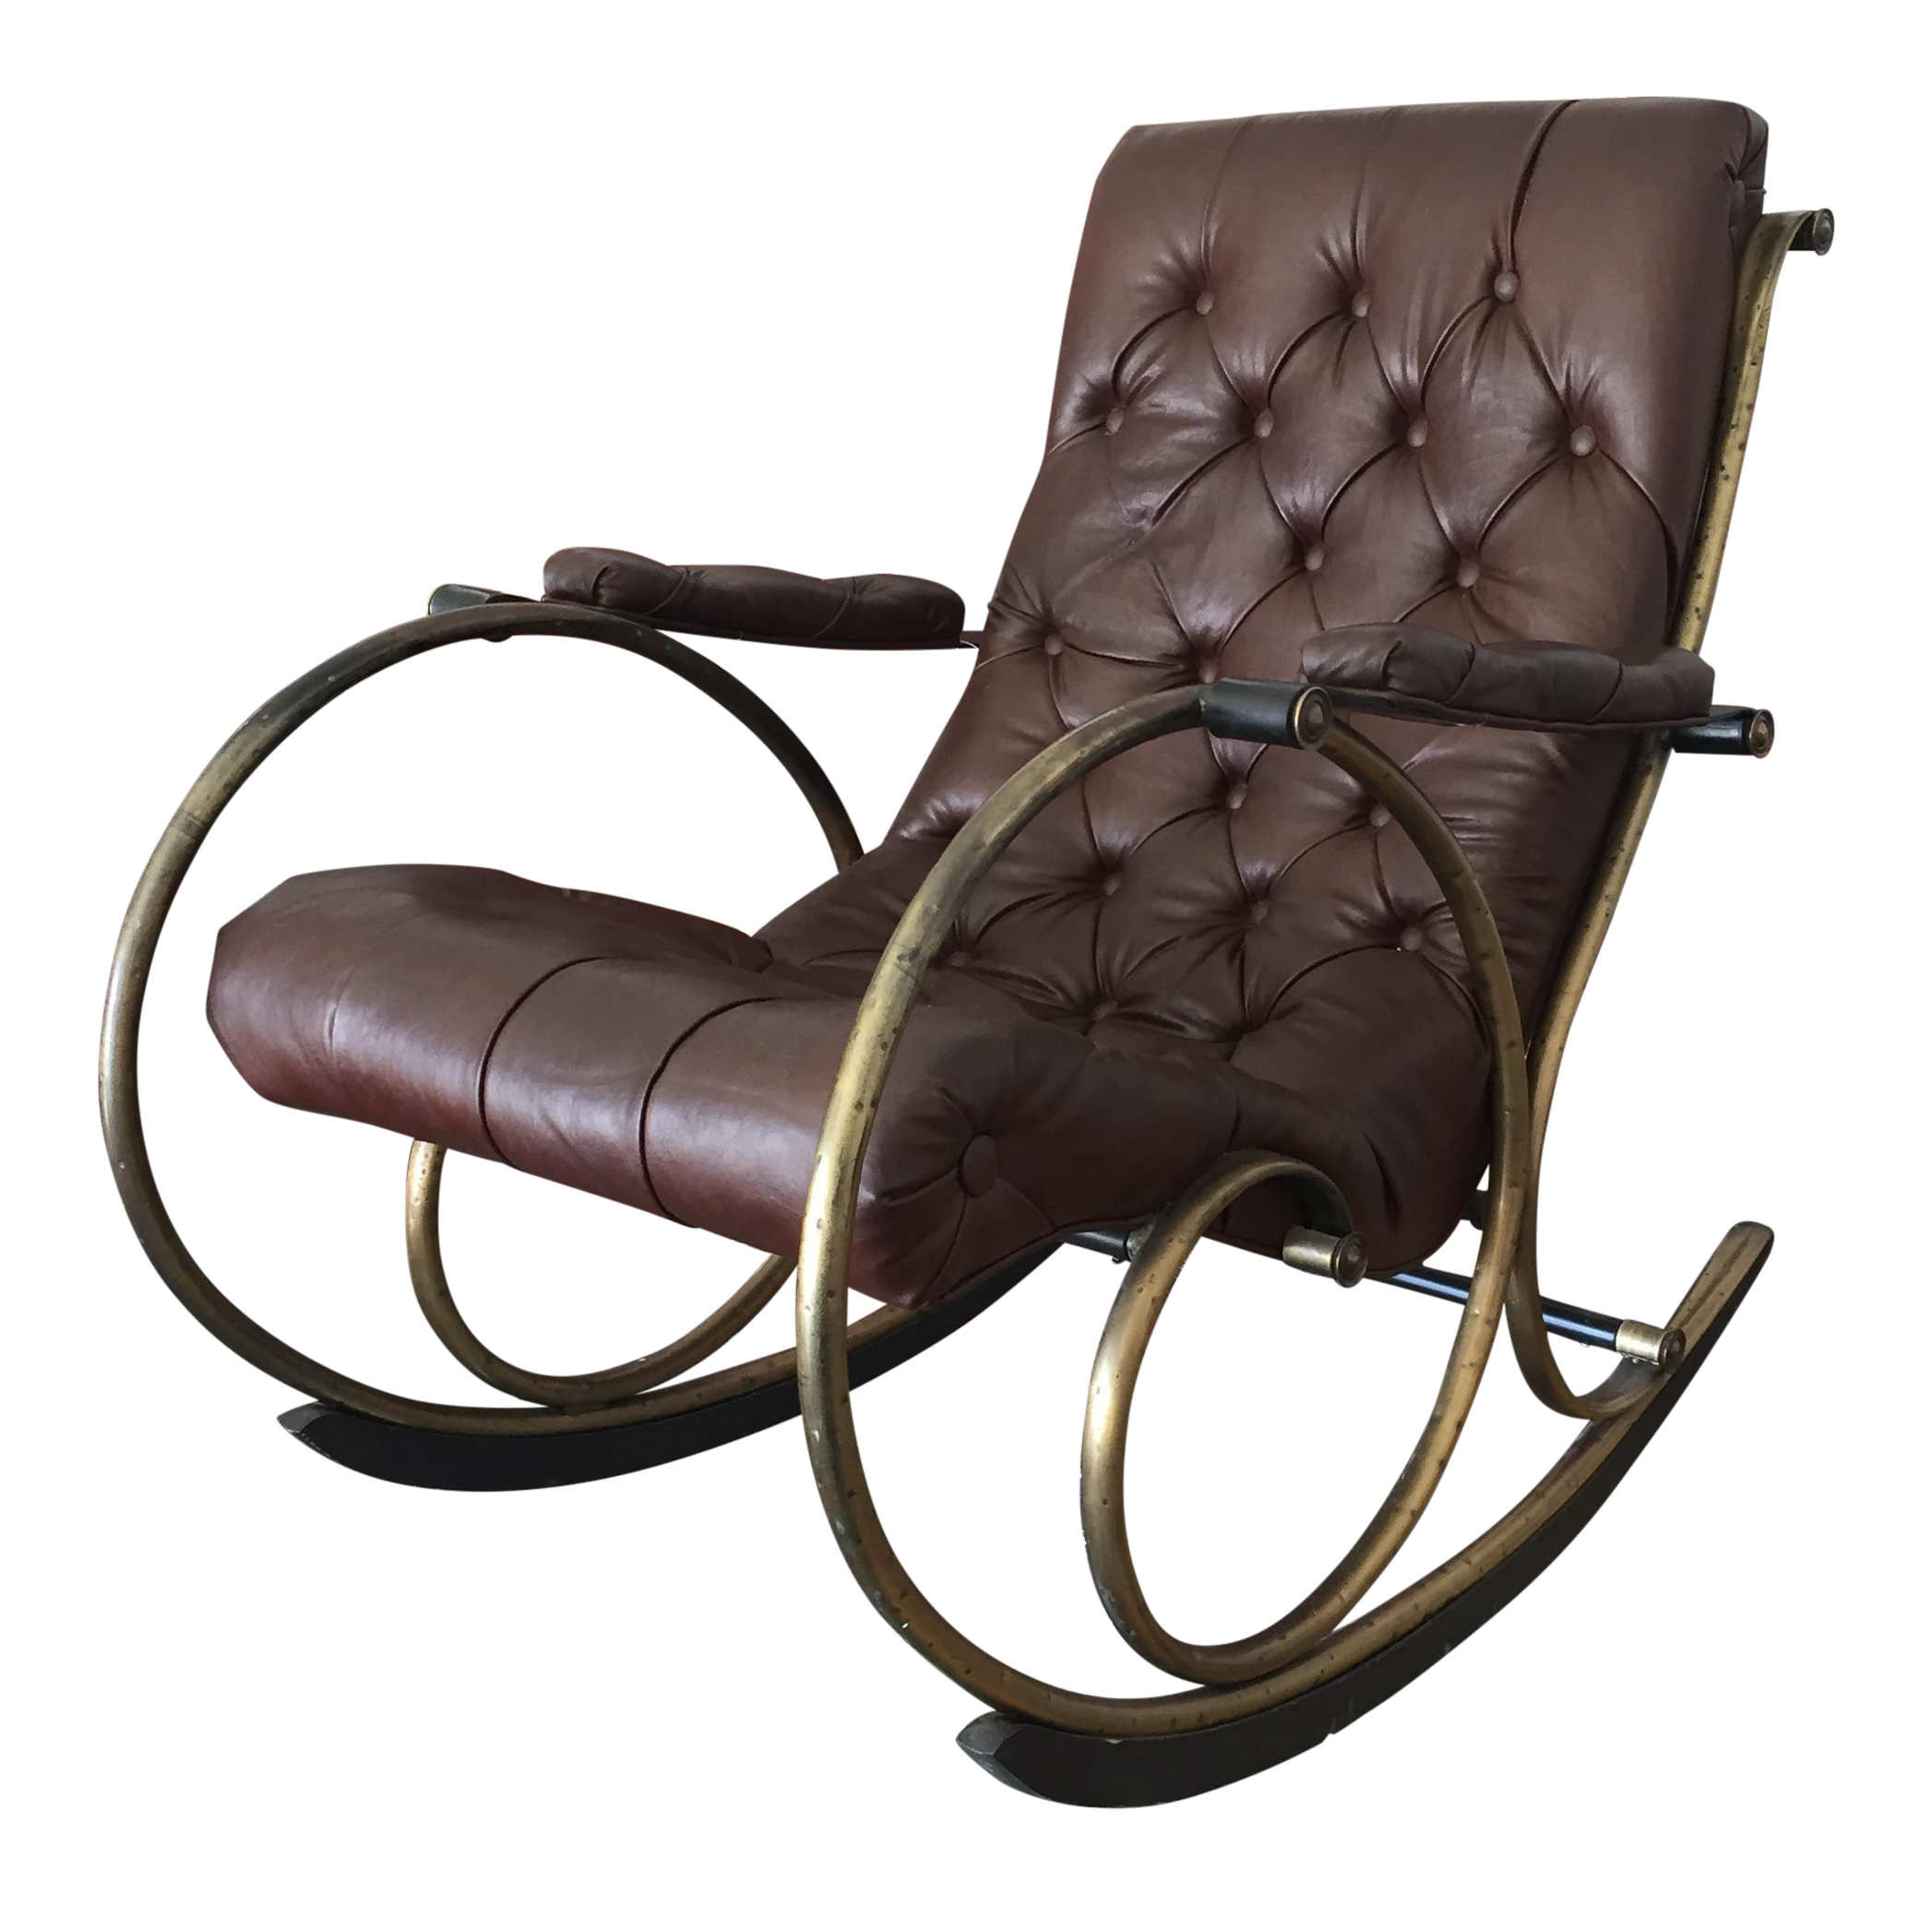 And wood rocking chair by woodard leather brass and wood rocker by - Shop 300 Used Amp Vintage Rocking Chairs At Chairish Com